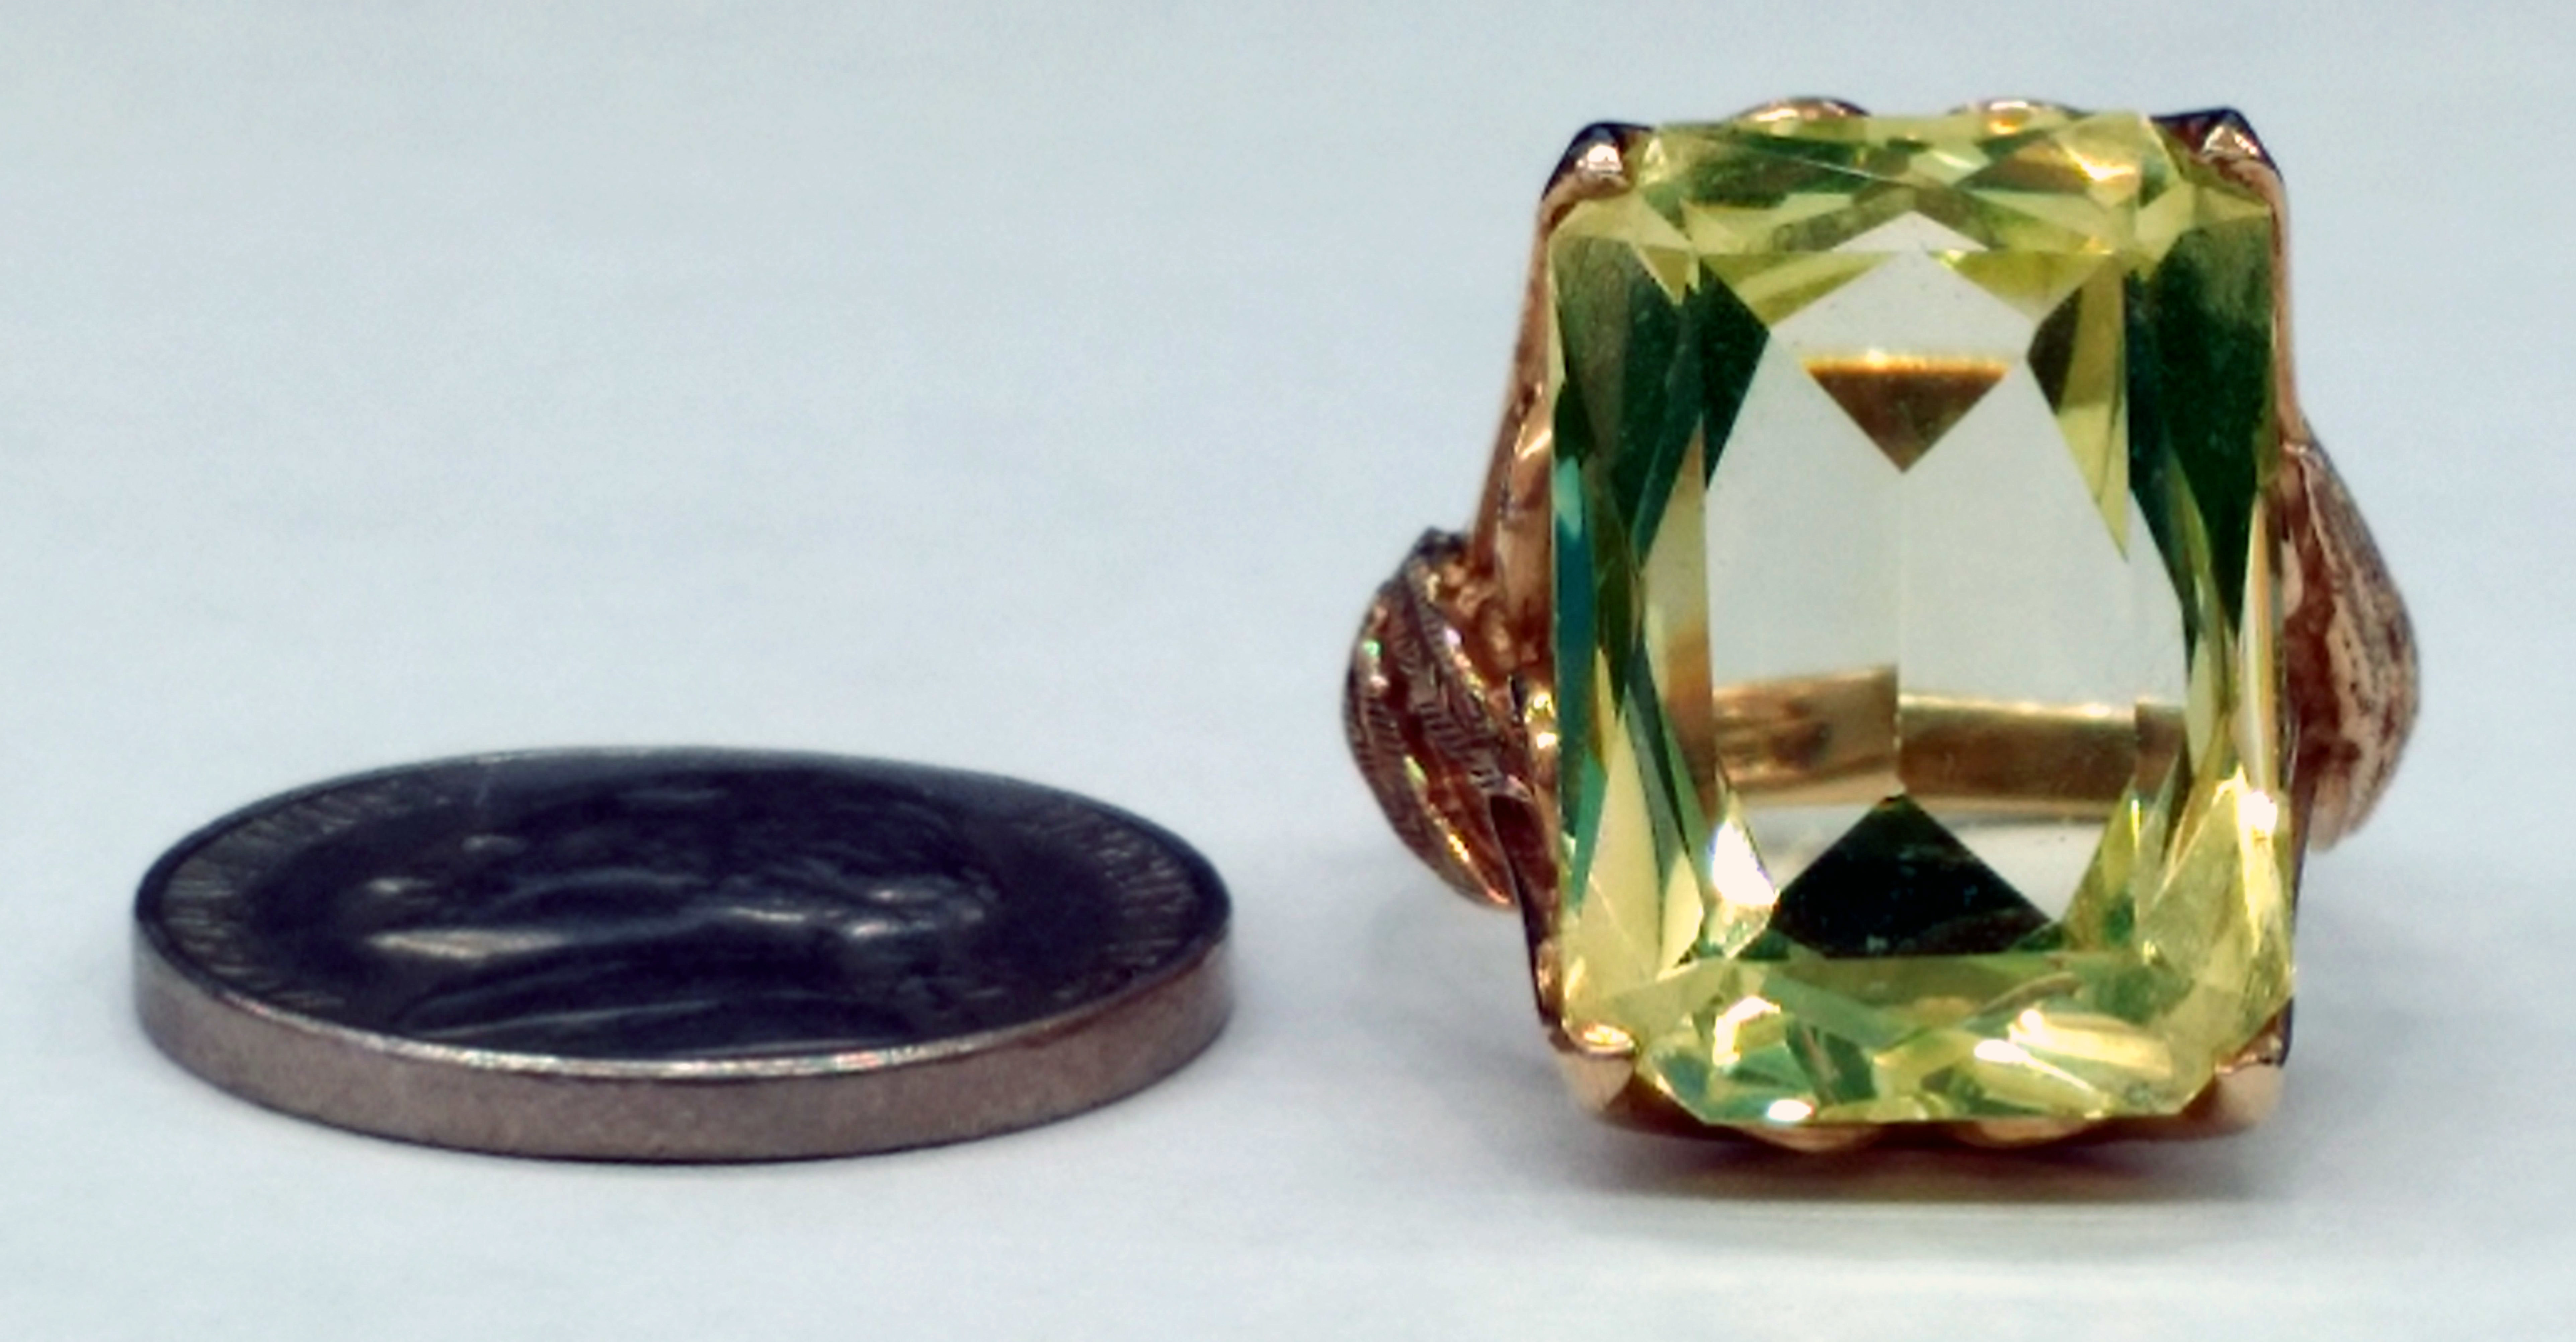 Yellow Radiant Cut Topaz Set in 14kt Yellow Gold Leaf Design Ring - Size 6 1/2